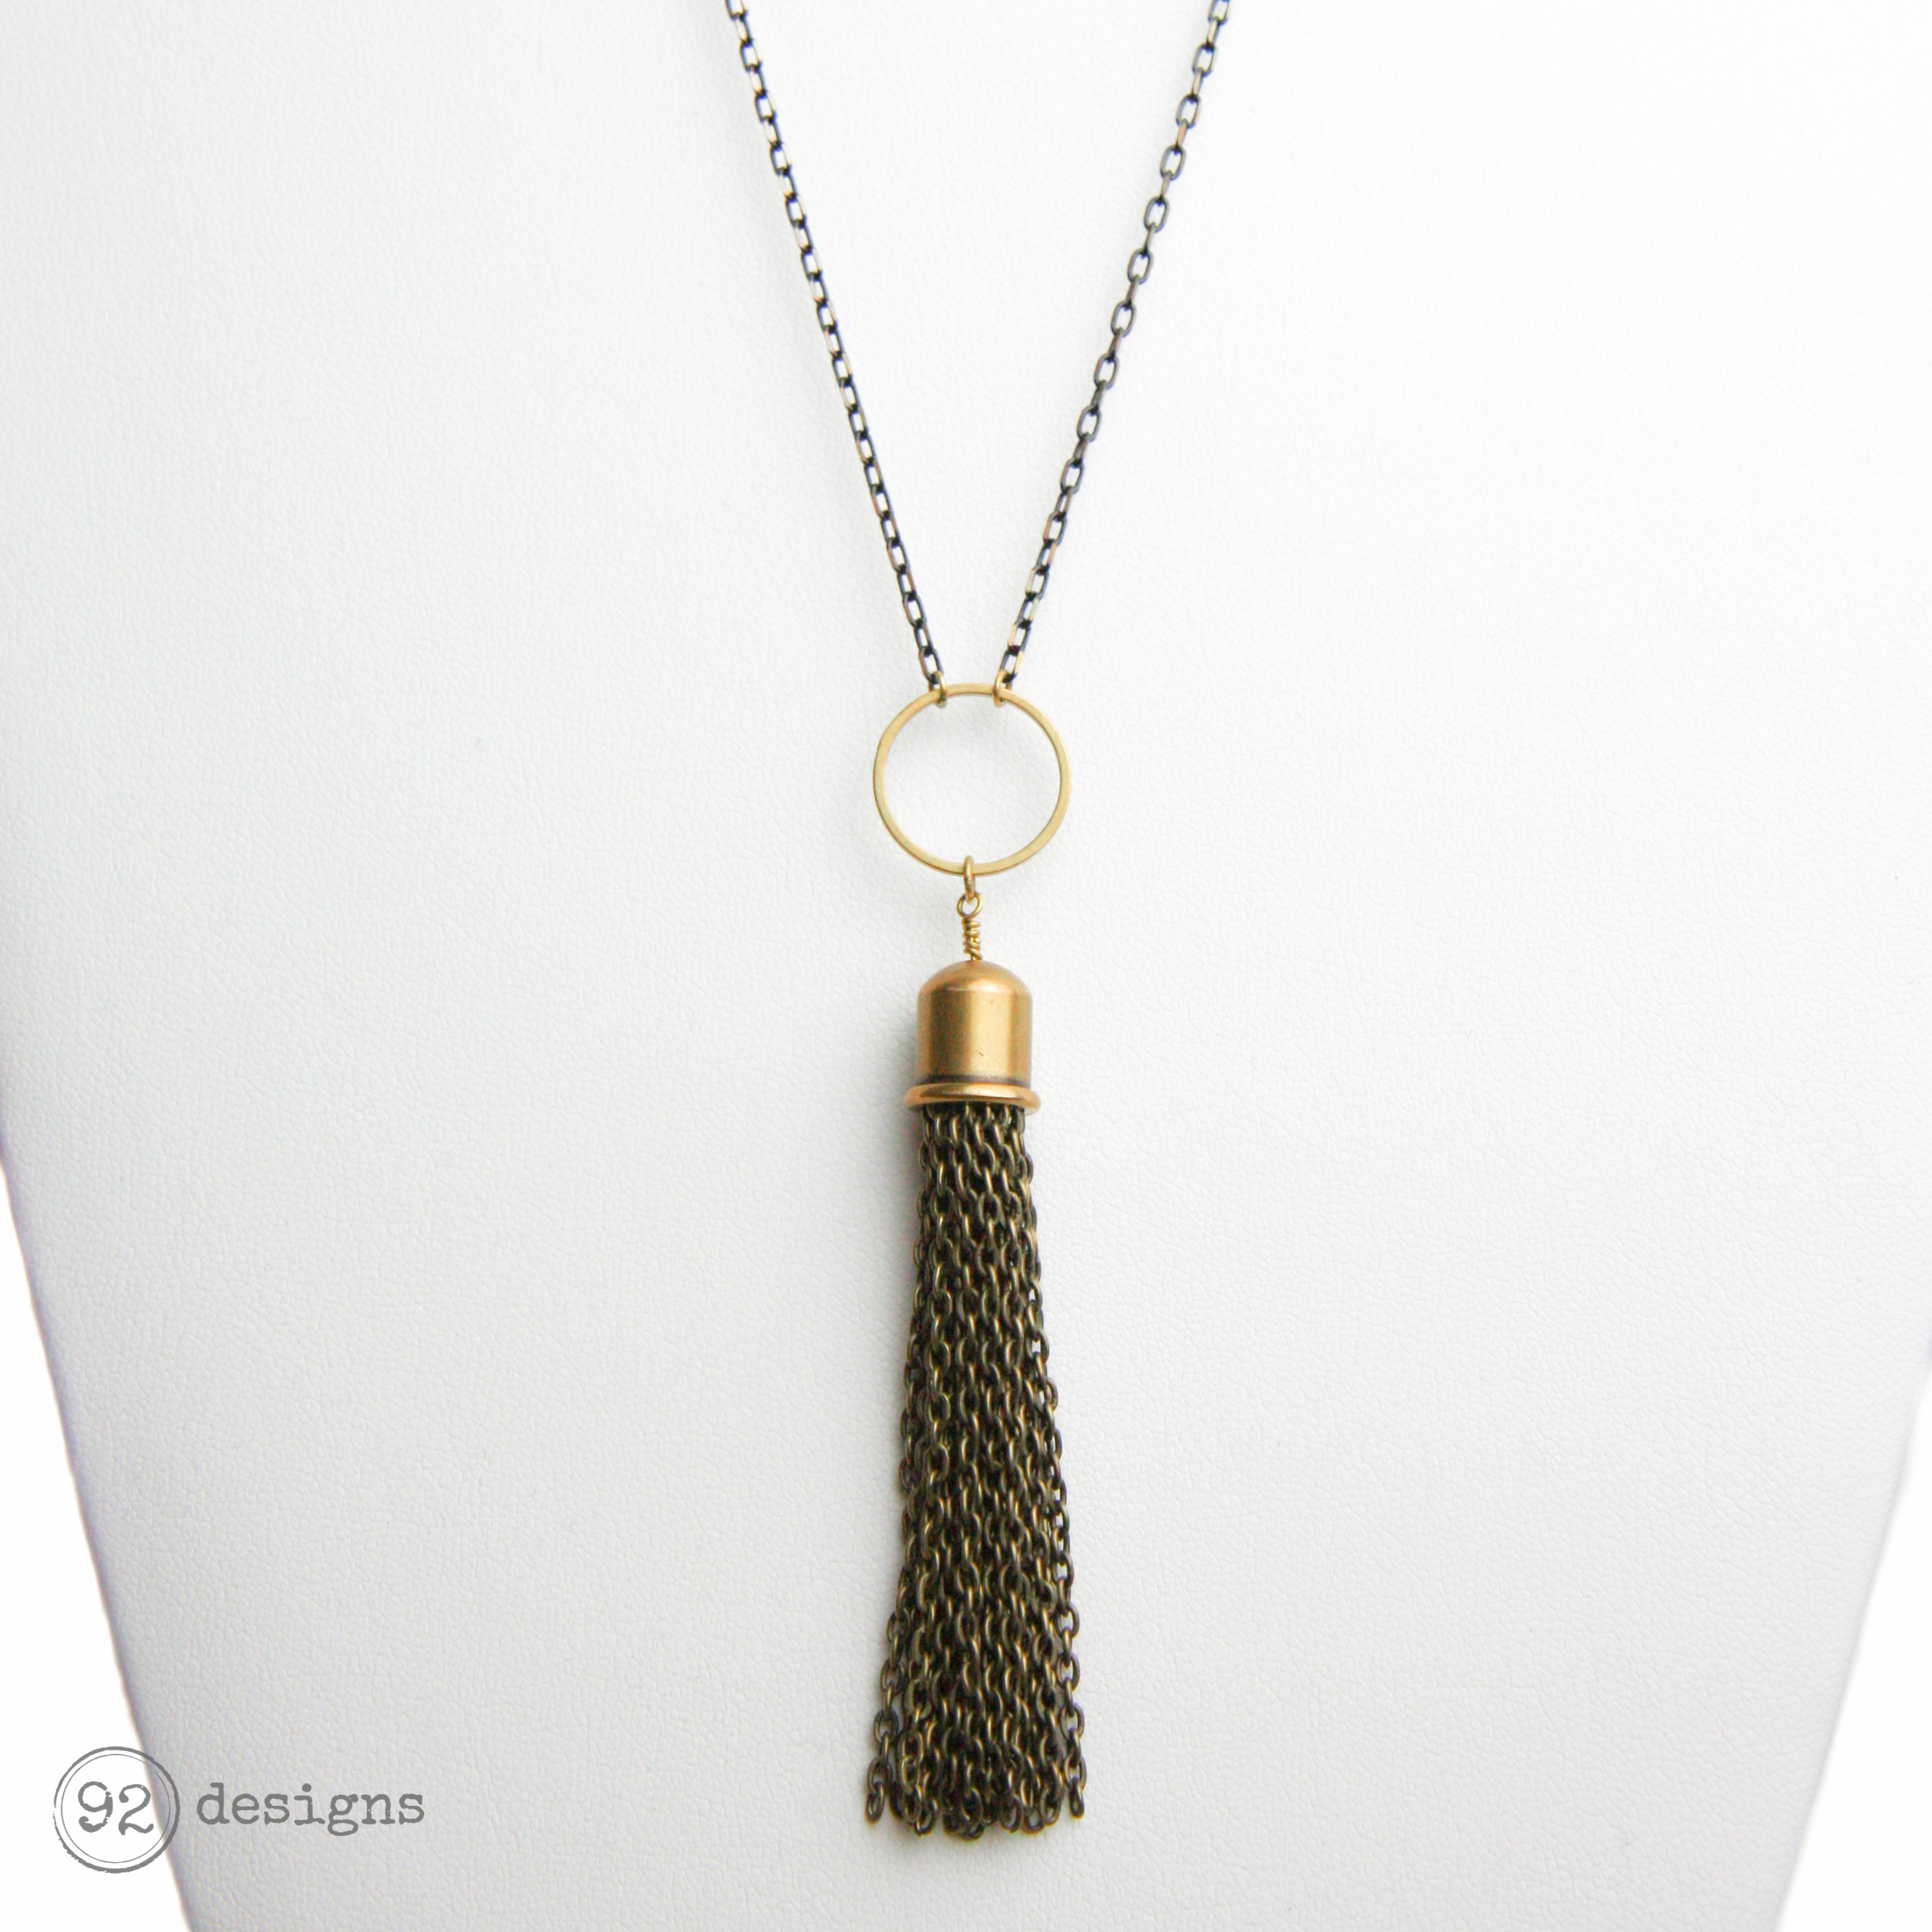 jewellery fullxfull anemone il mica pendant necklace minimal brass peet gold products simple flower modern floral